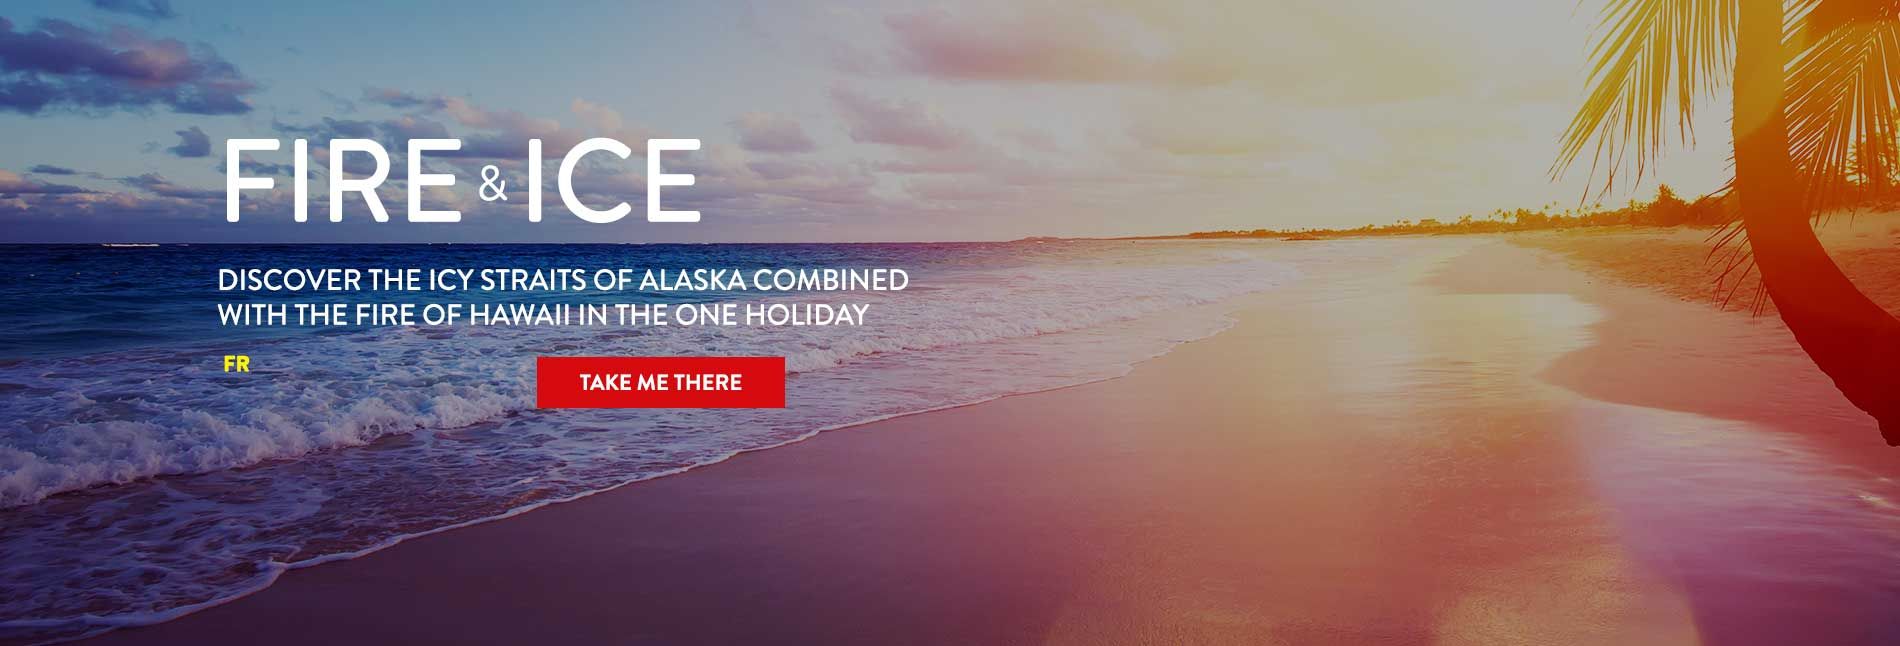 Fire & Ice Cruise Deals